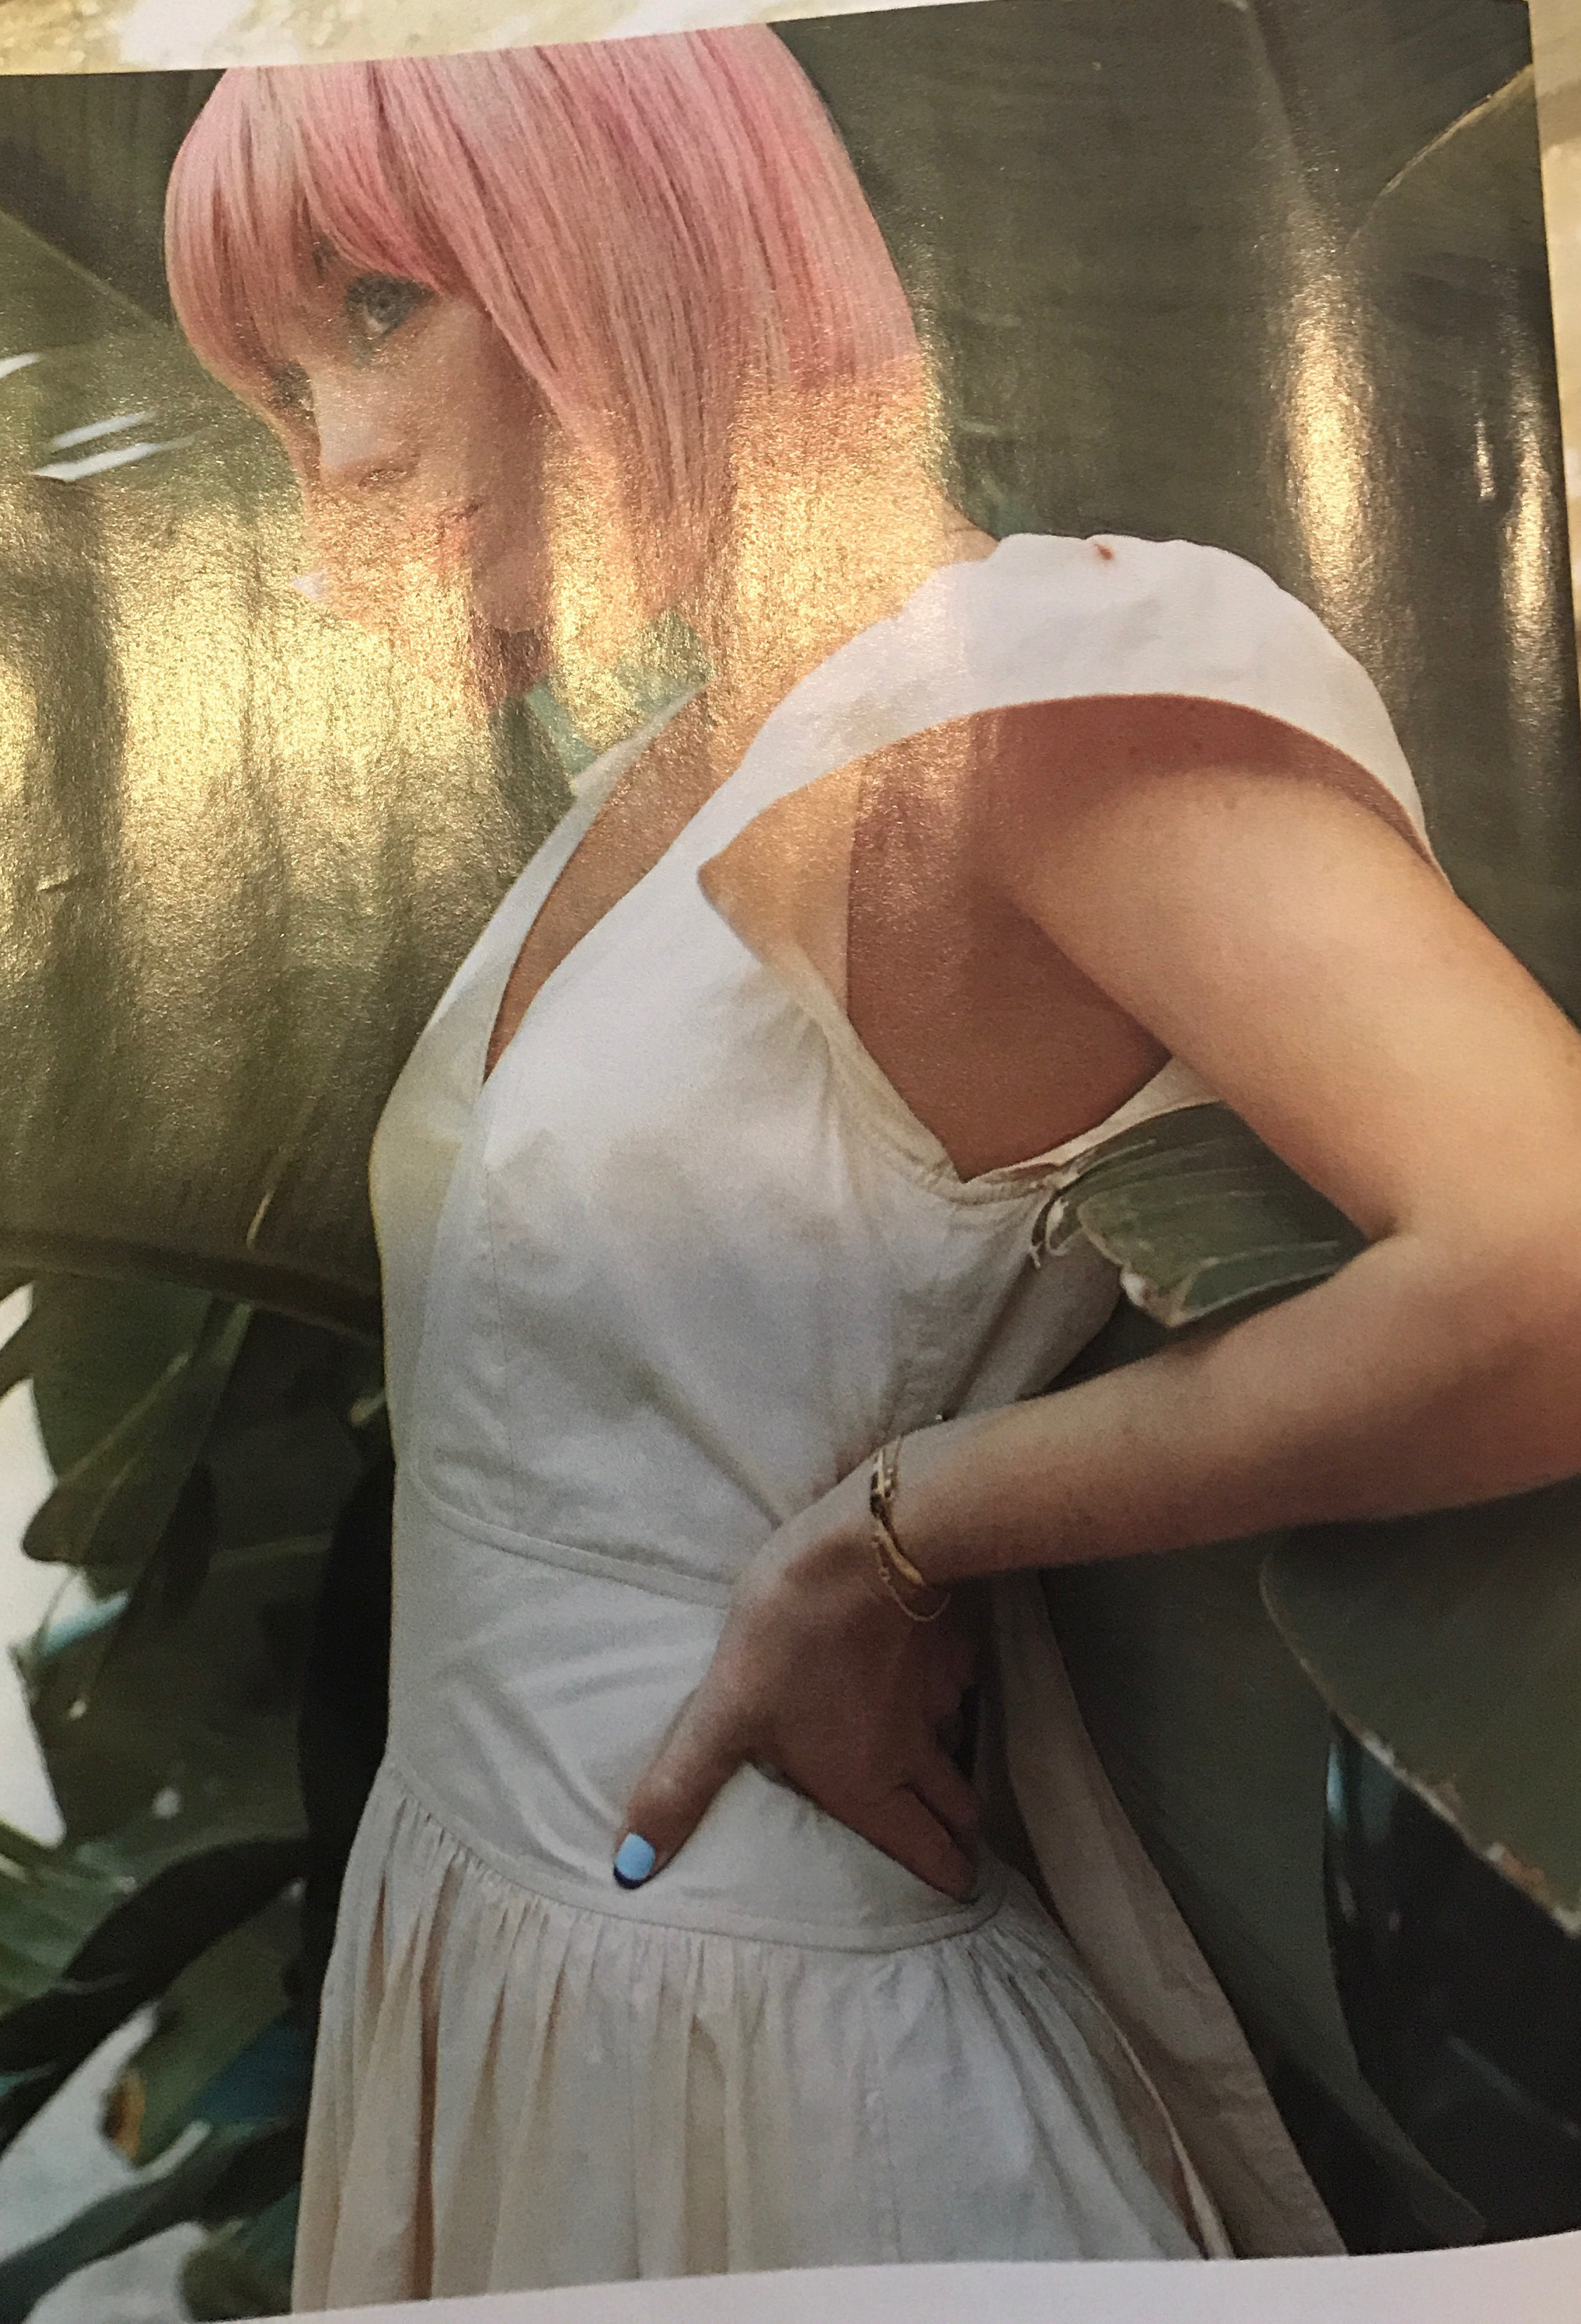 dress ulta magazine white white dress